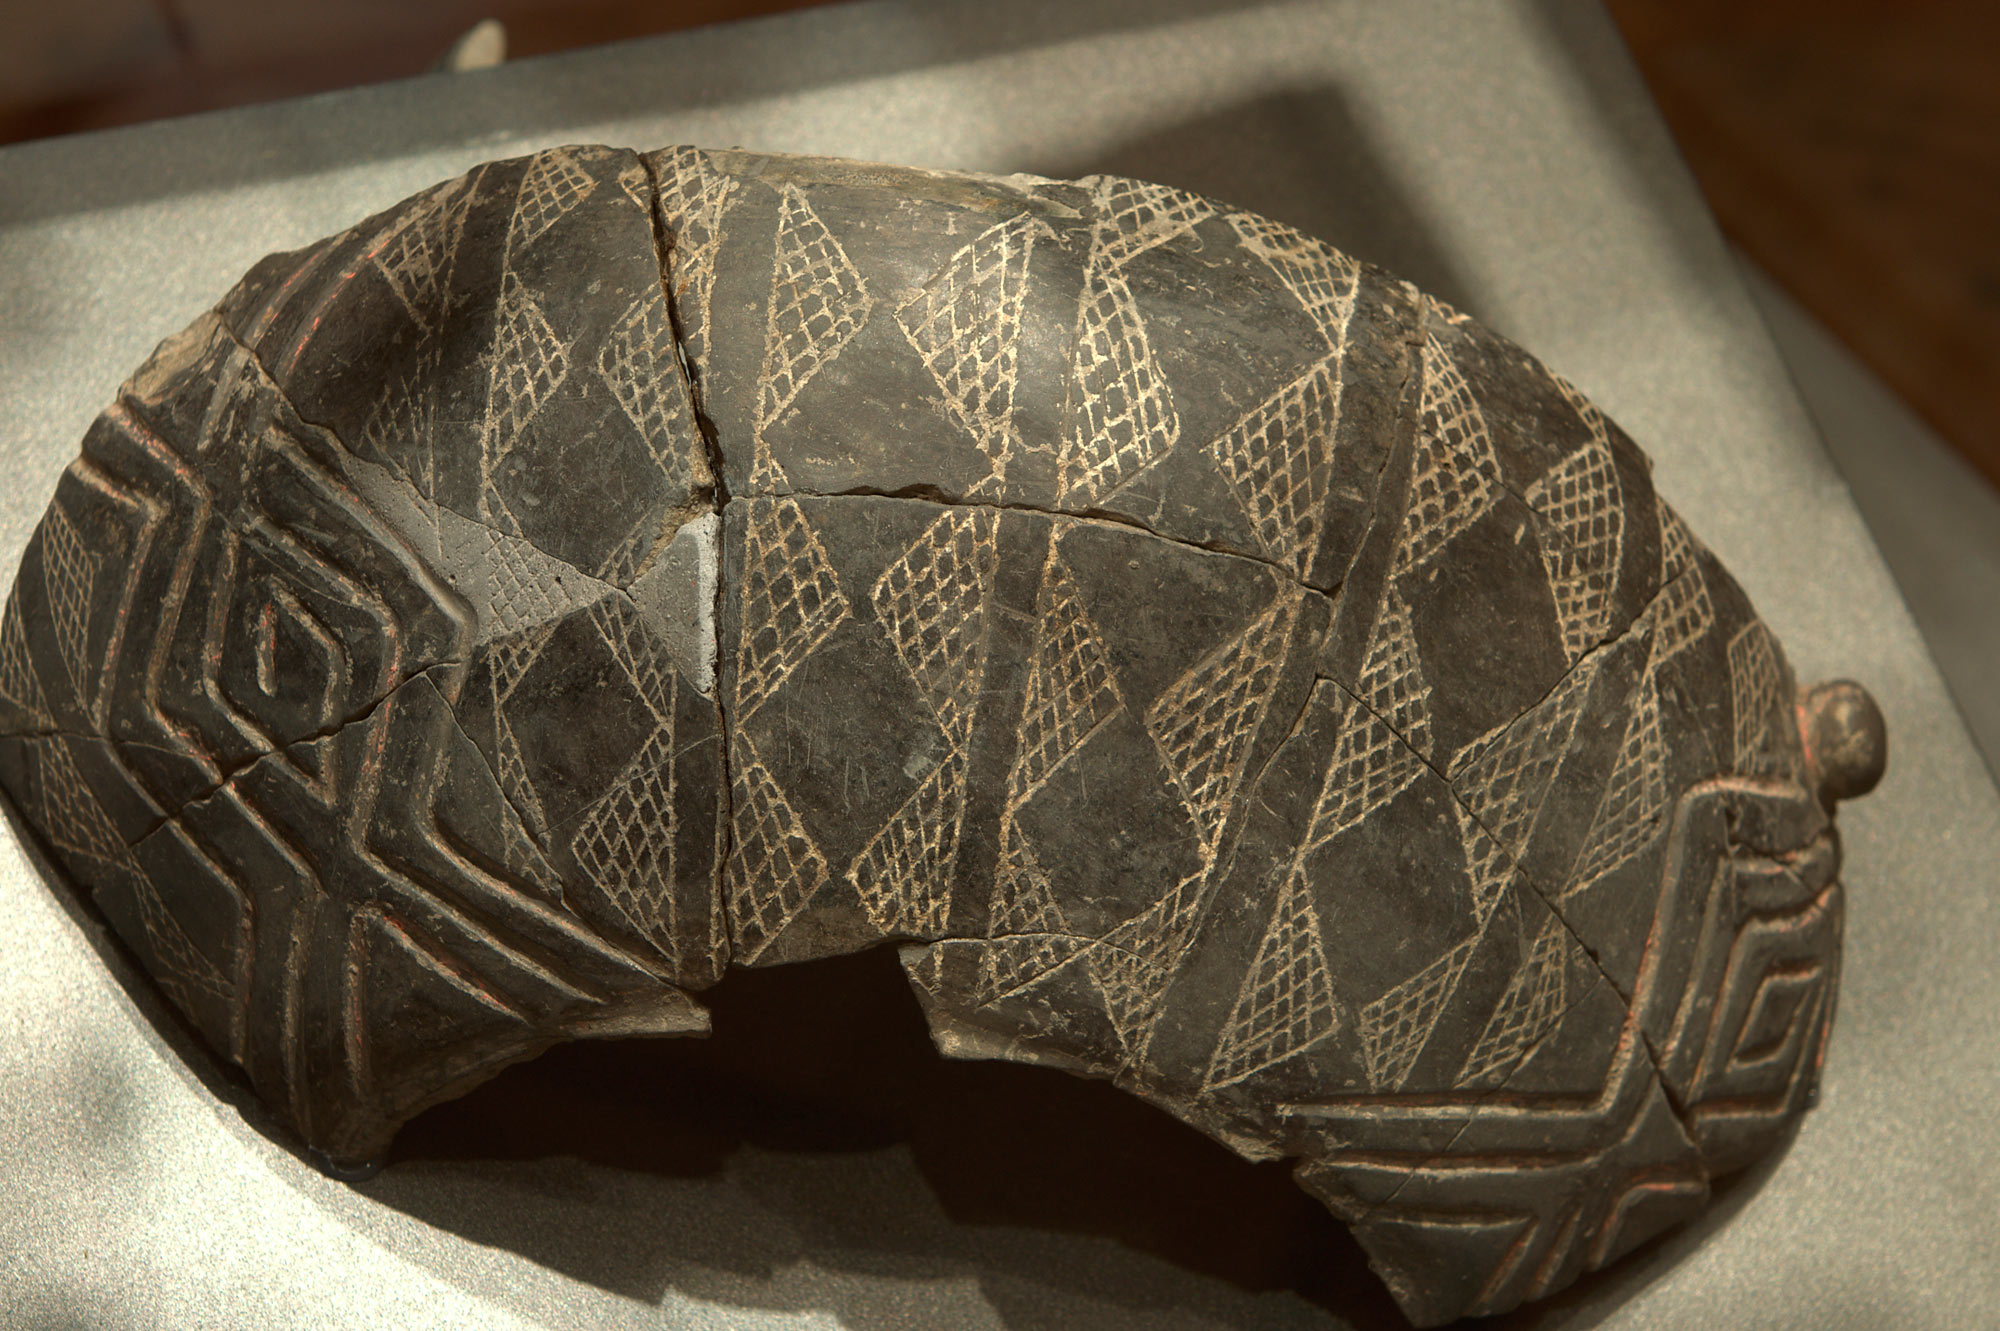 A fragment of a larger ceramic container – middle Neolithic period